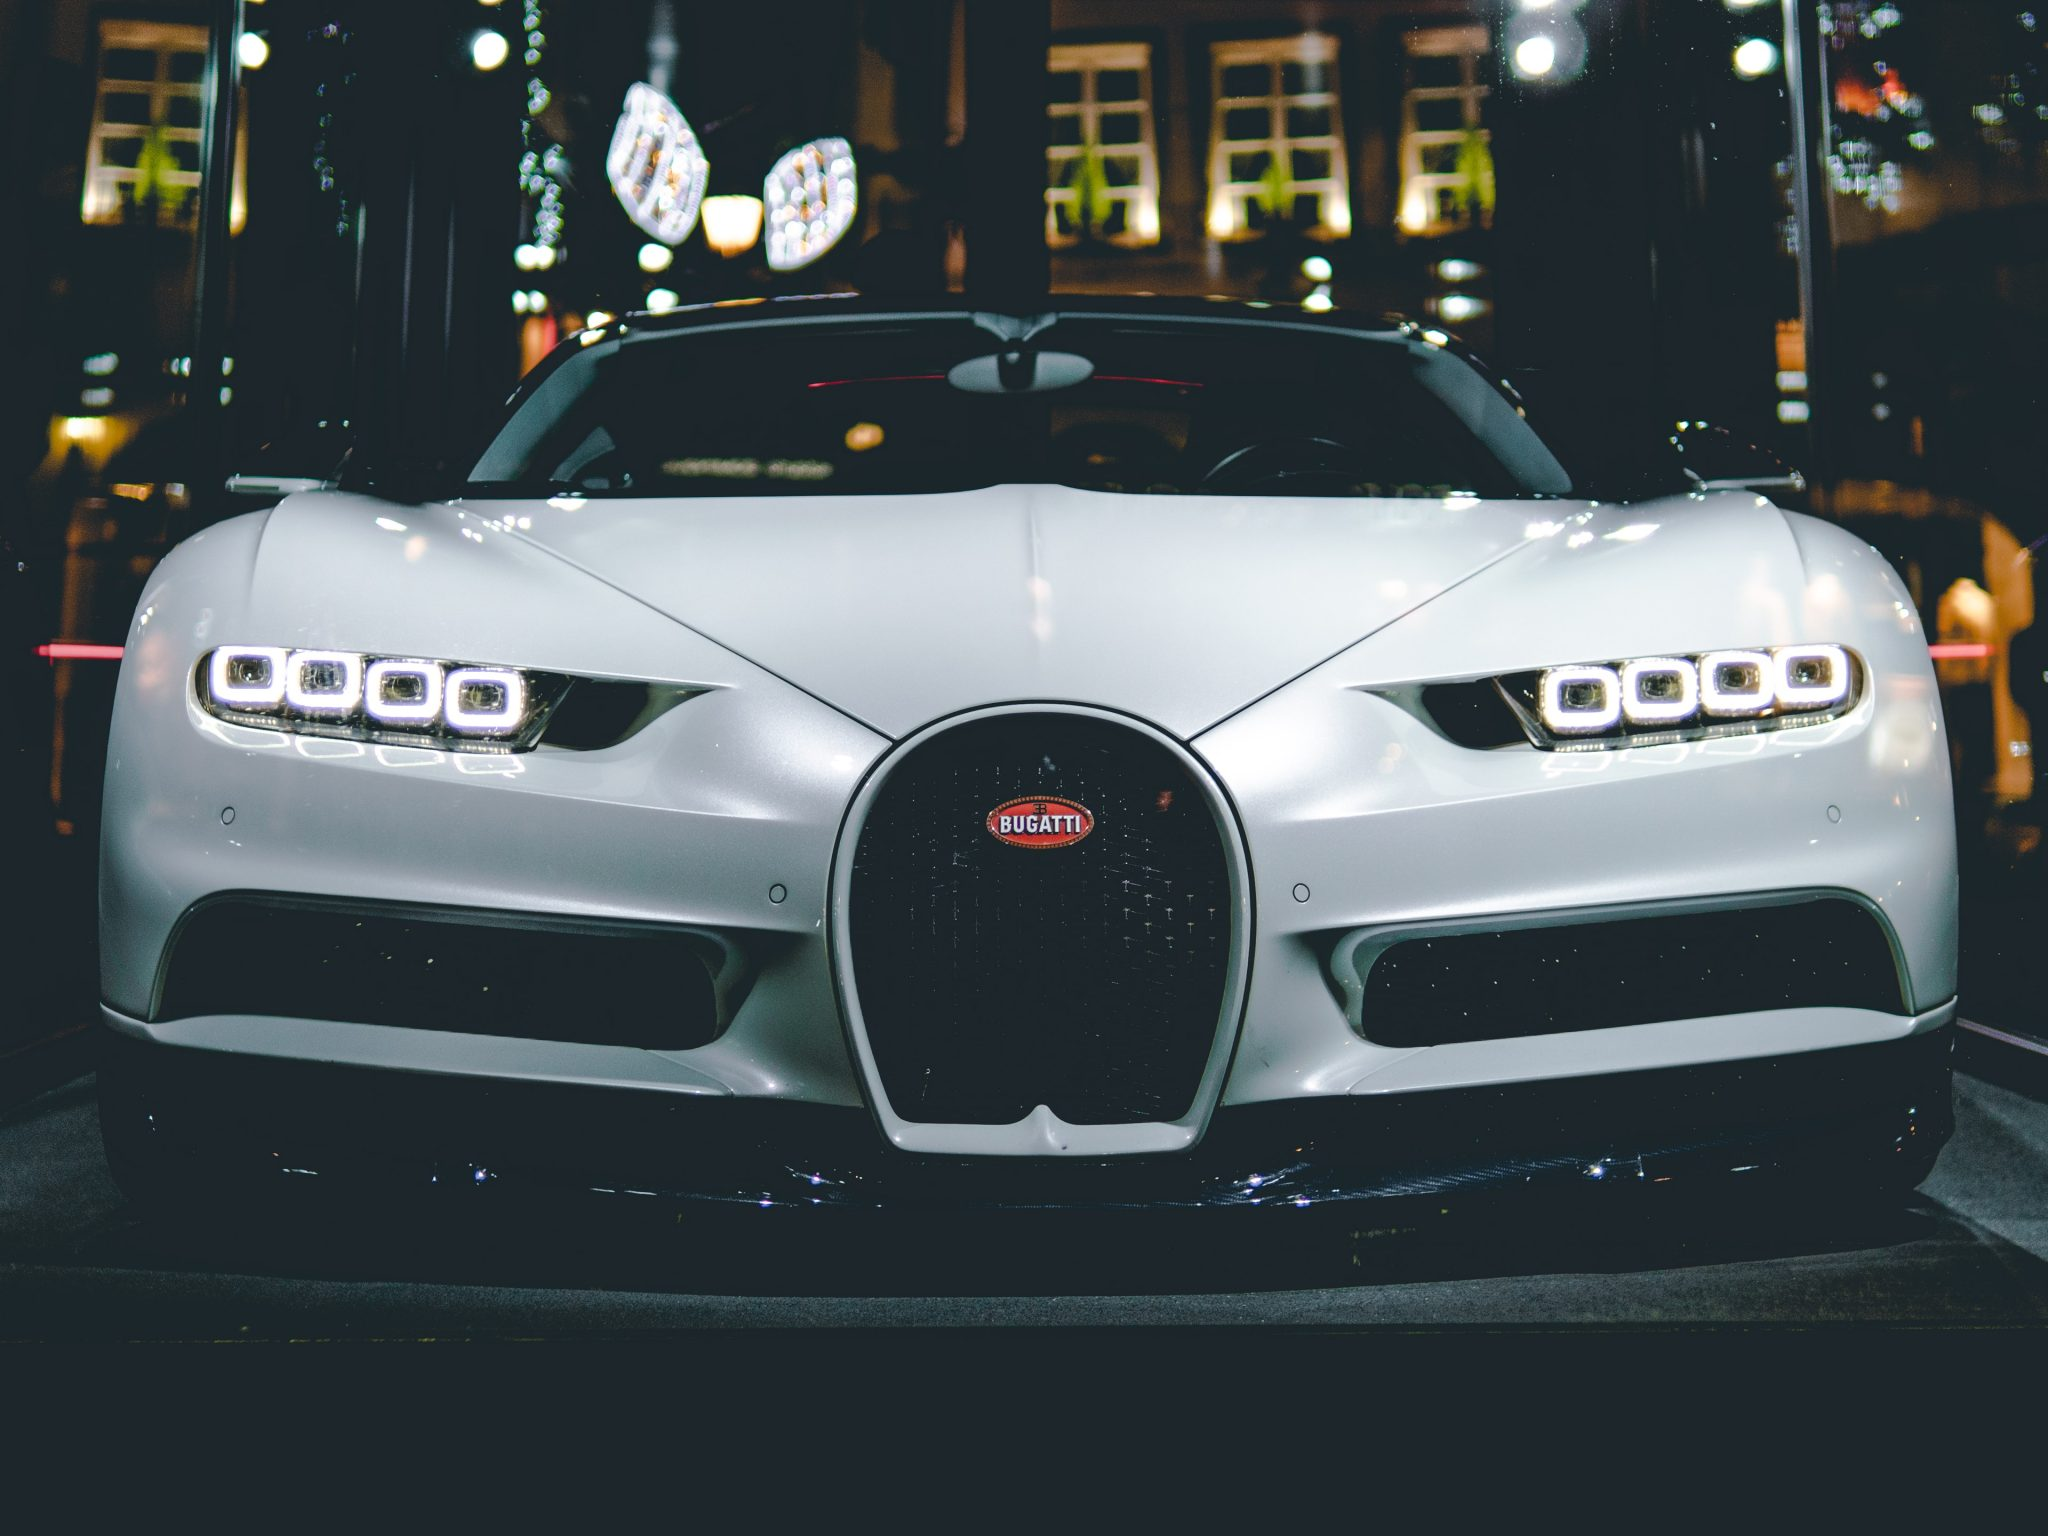 best online marketing courses bugatti